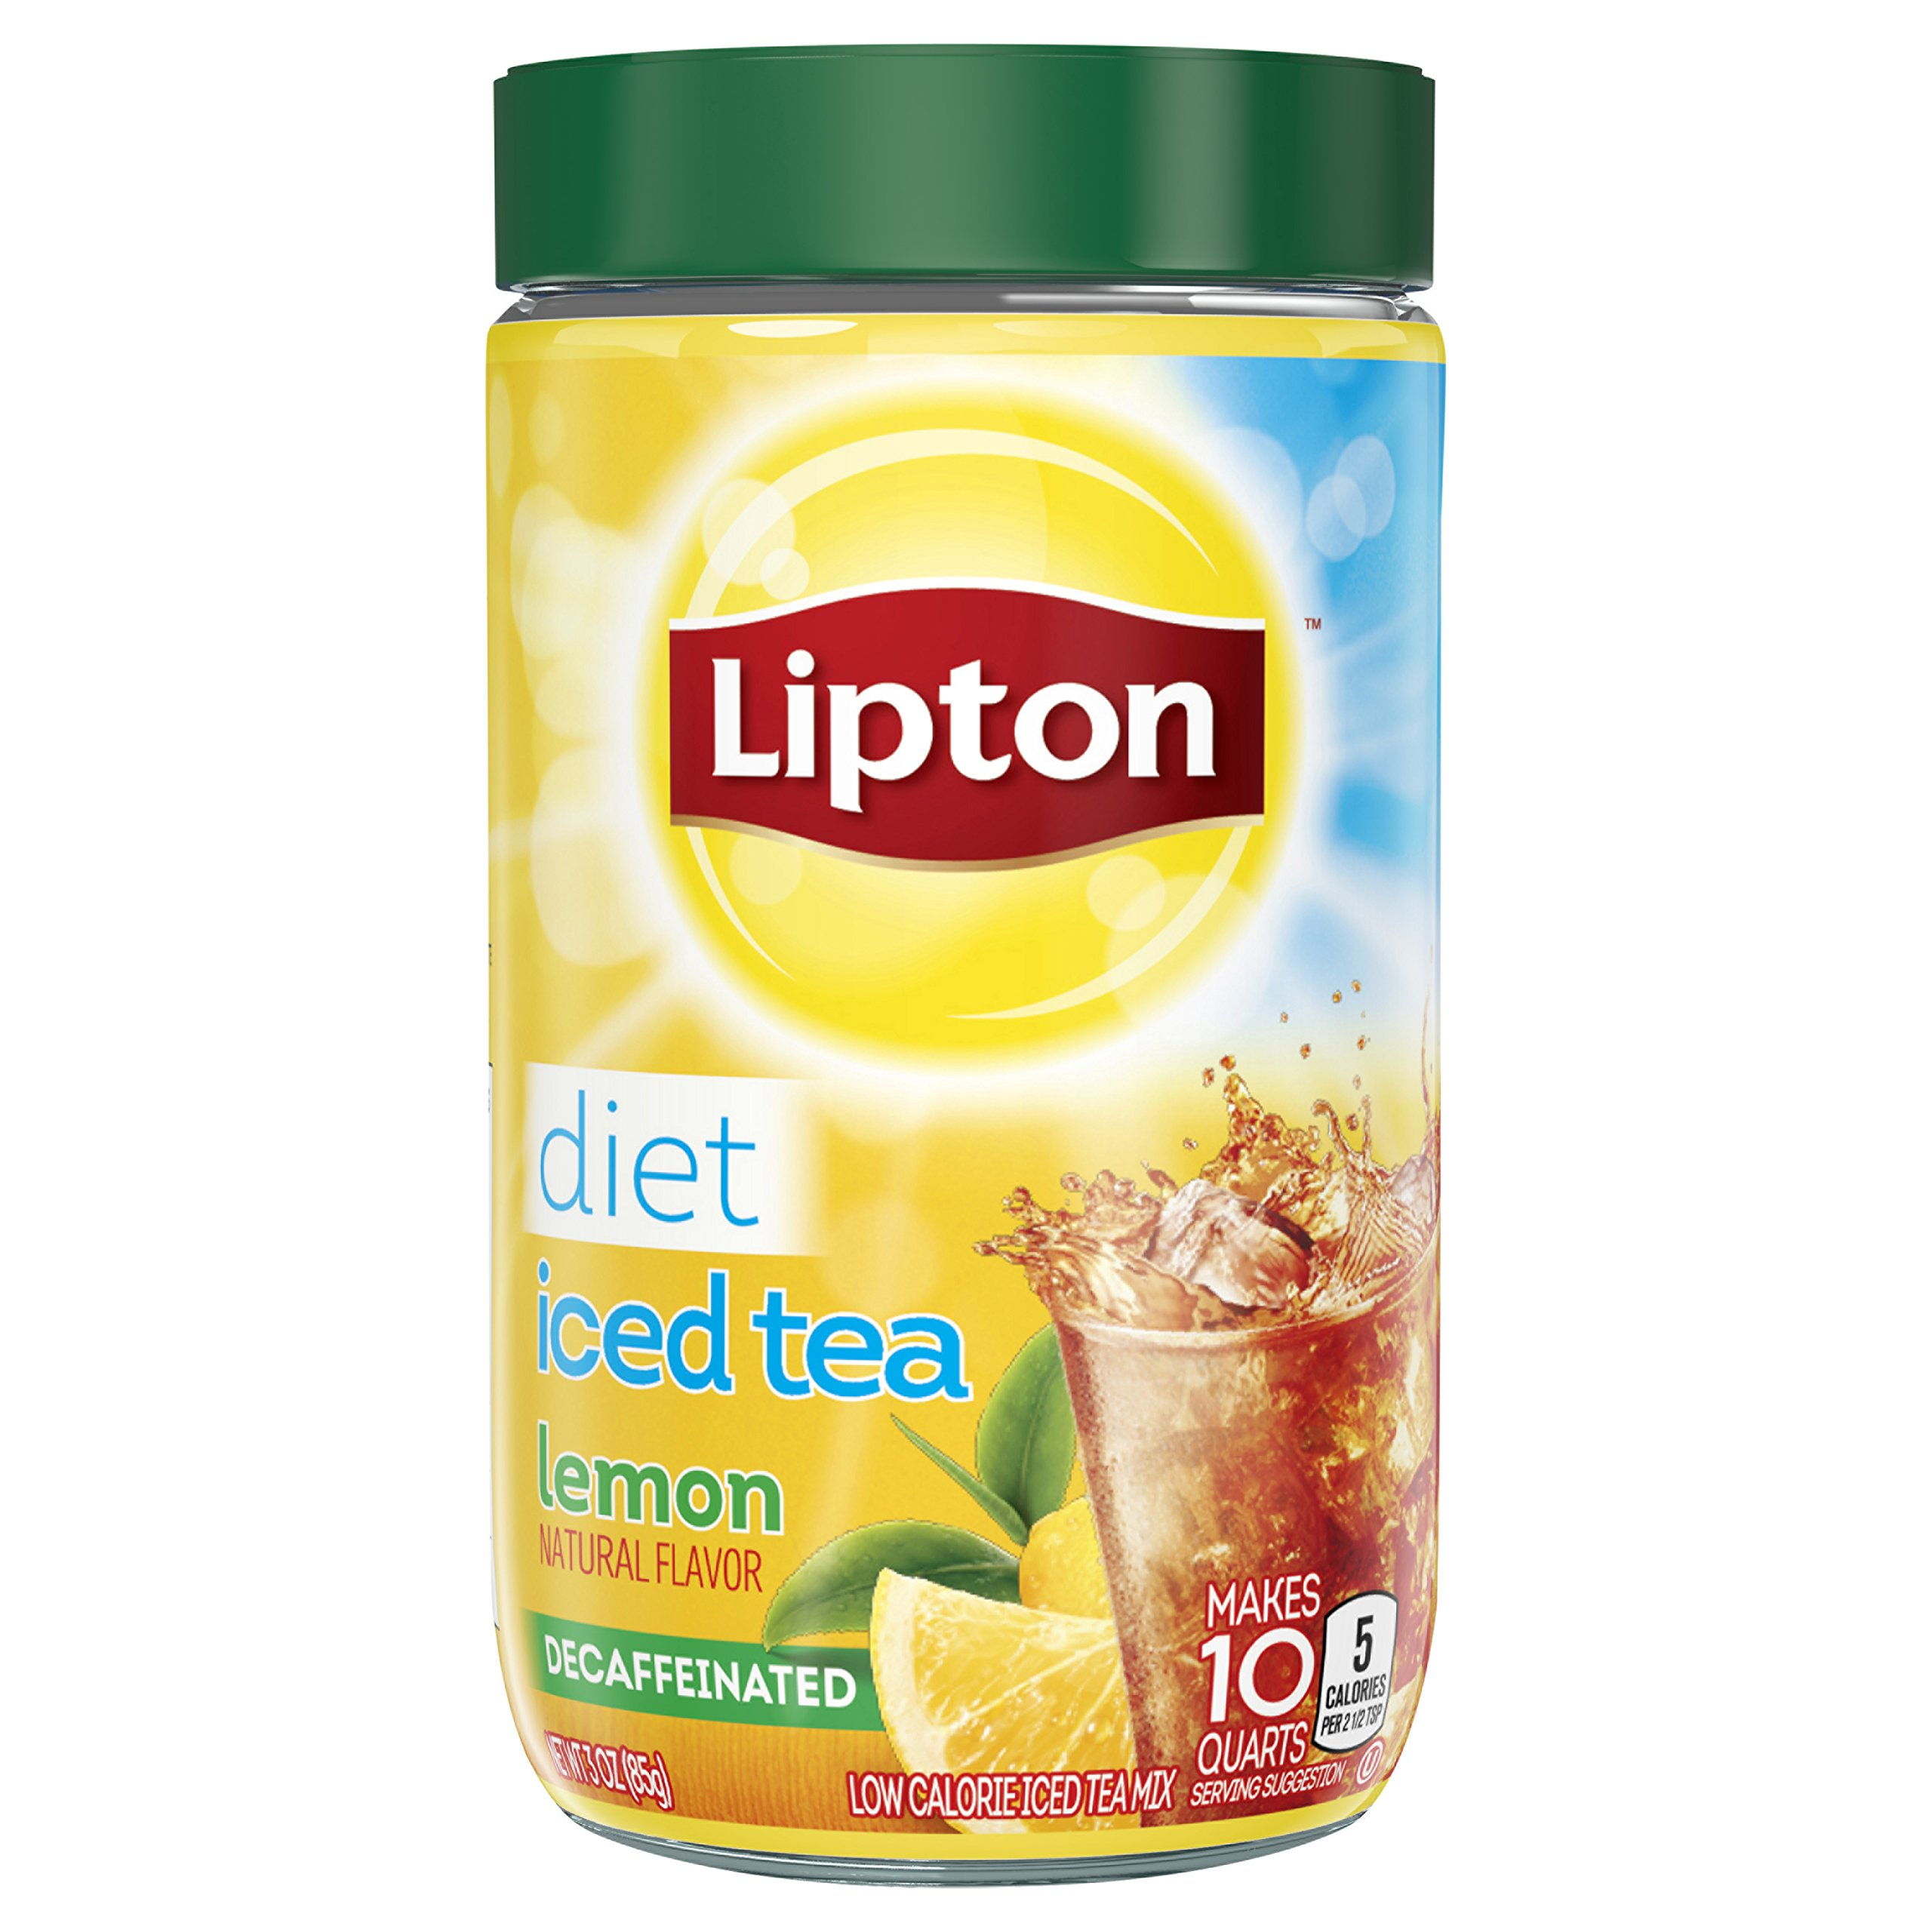 Lipton Iced Tea Mix, Diet Decaffeinated Lemon 10 qt (Pack of 4) by Lipton (Image #1)